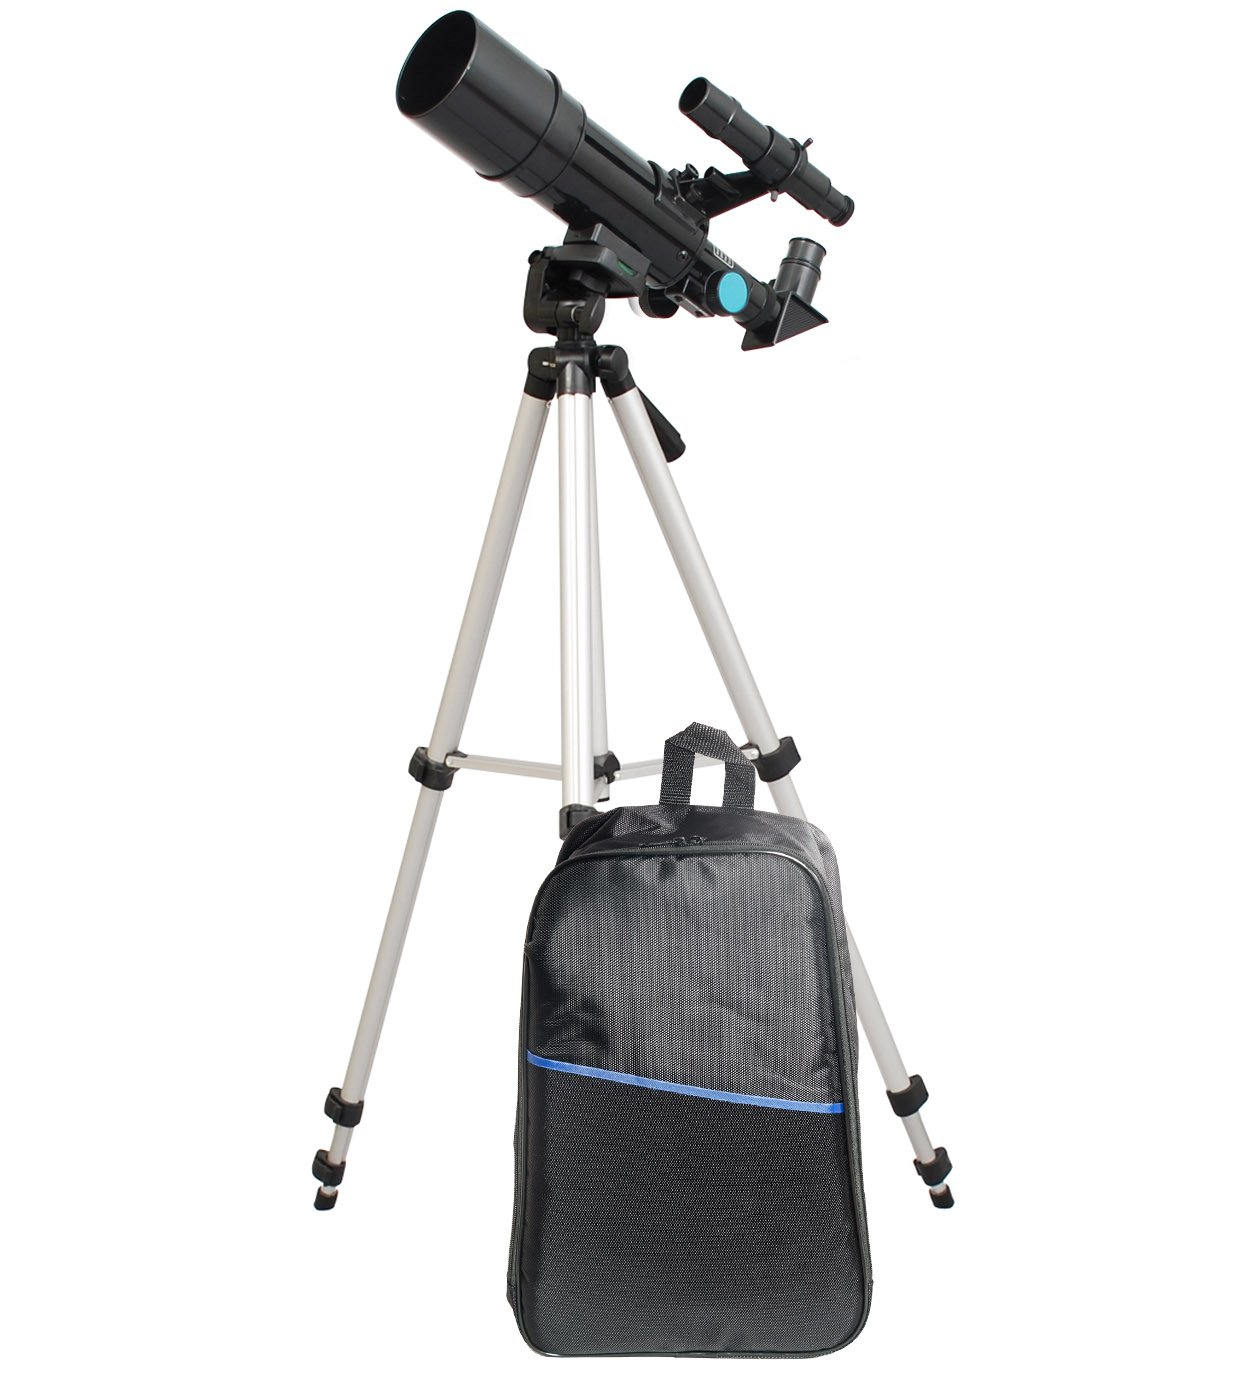 Black Backpack Bundle TwinStar 60mm Refractor Telescope 300mm Focal Length   15x and 50x Magnification Eye Pieces Included   Easy, Light Weight and Includes Aluminum Tripod   Great for Kids